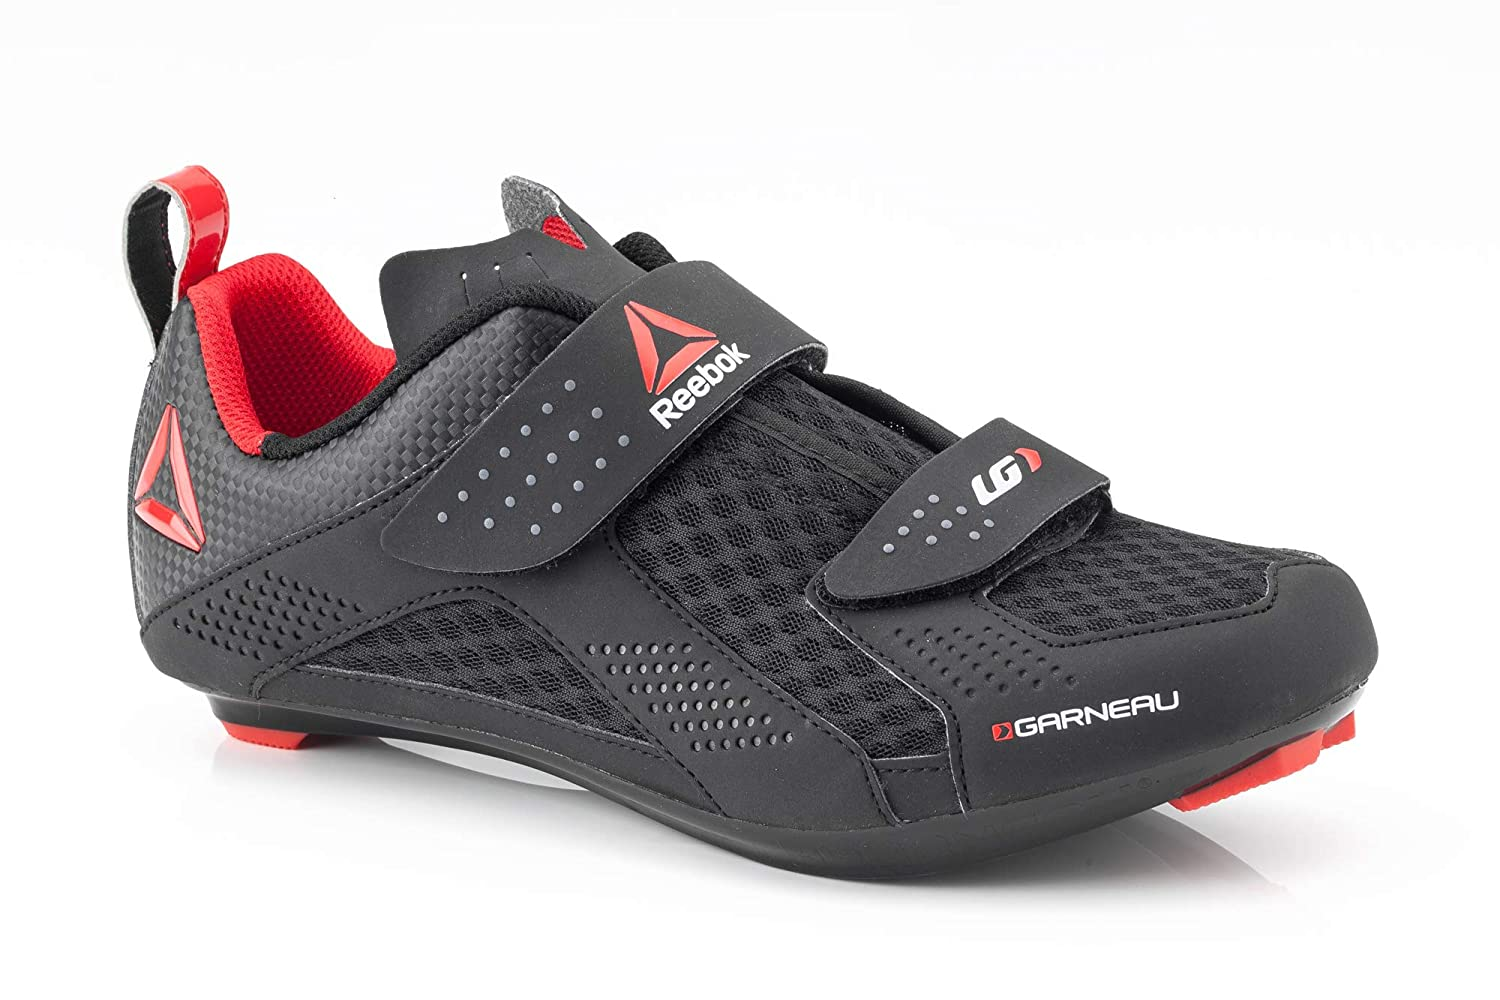 1272f3a3d8a reebok indoor shoes off 56% - www.la-pharmacie-du-chesnaie.fr